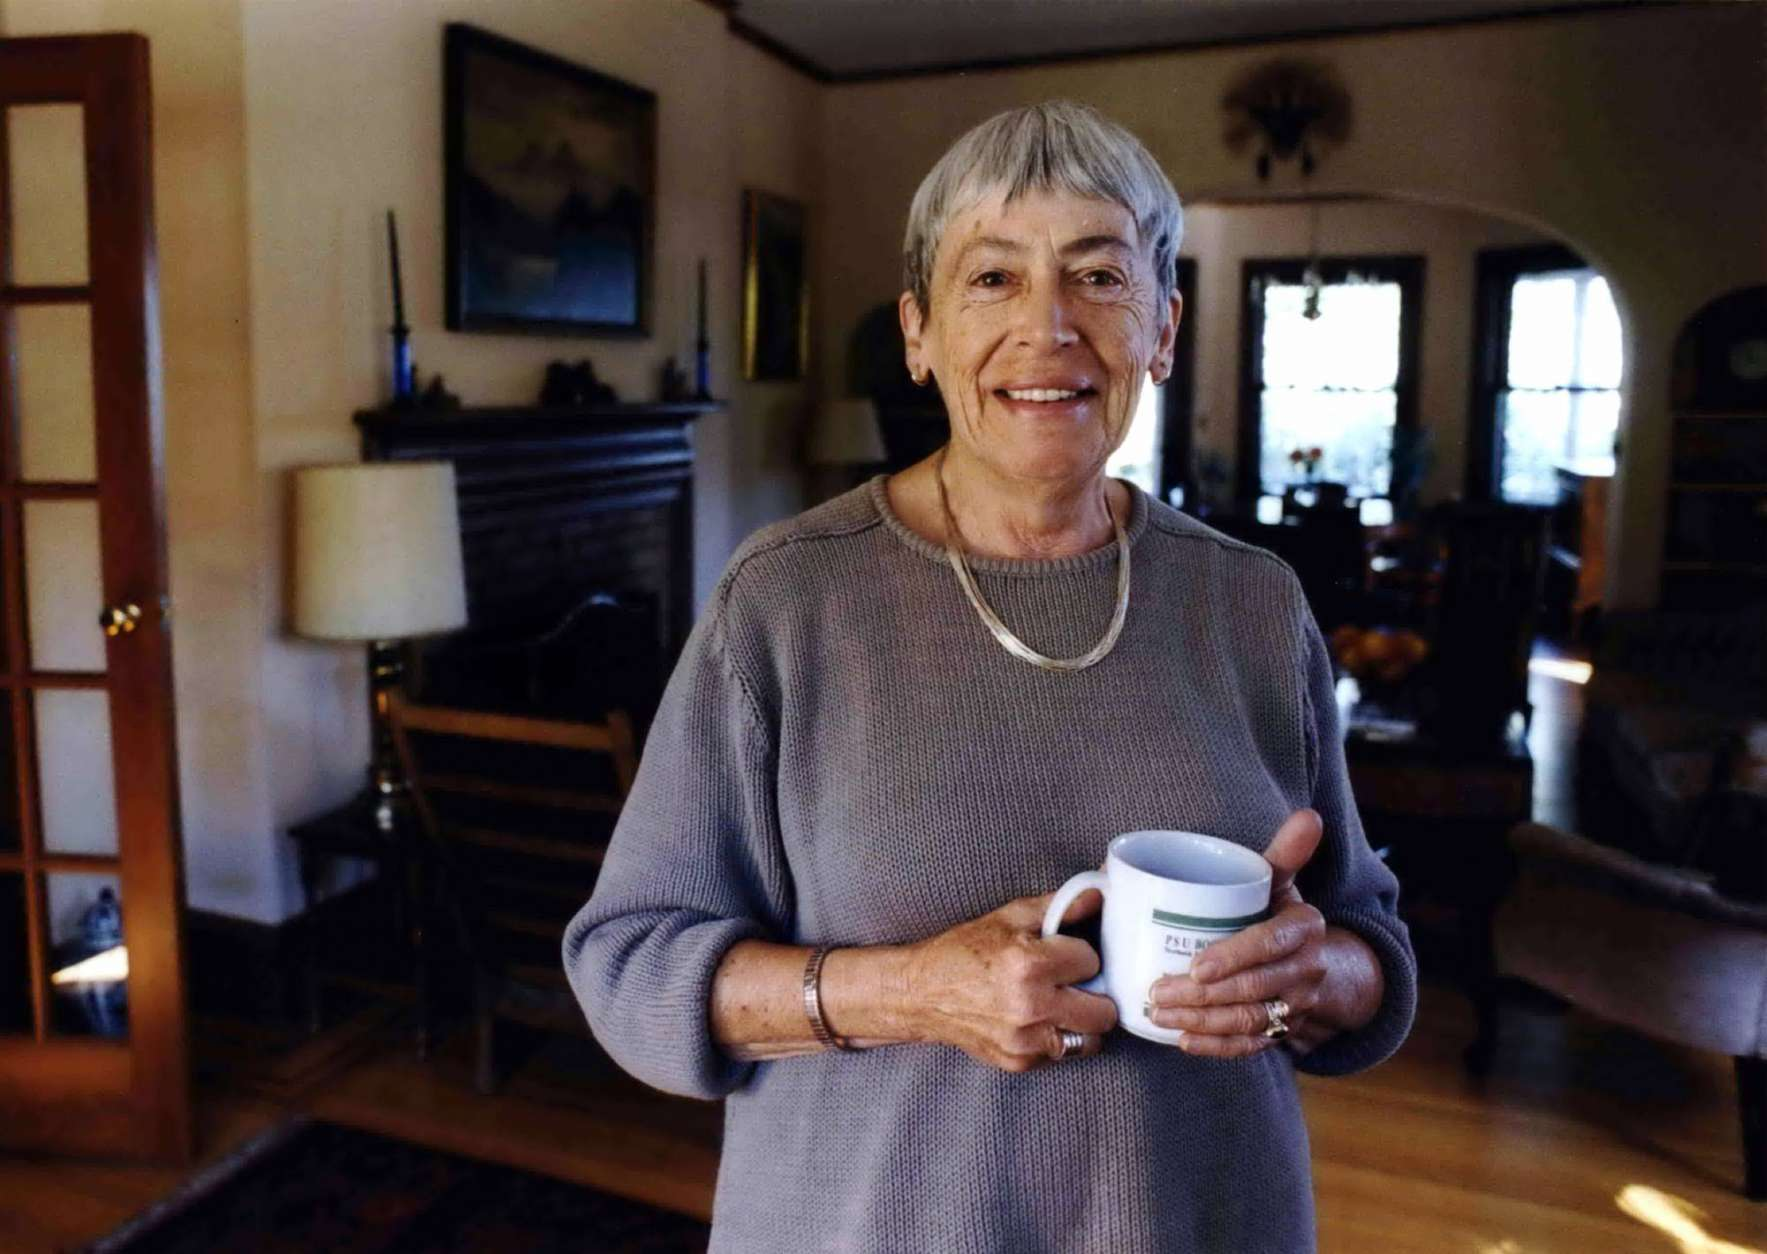 Ursula Le Guin American author of novels, children's books, is seen in a Sept. 9, 2001 photo at home in Portland, Ore. Le Guin, the award-winning science fiction and fantasy writer who explored feminist themes and was best known for her Earthsea books, died peacefully Monday, Jan. 22, 2018, in Portland, Oregon, according to a brief family statement posted to her verified Twitter account. She was 88. (Benjamin Brink/The Oregonian via AP)